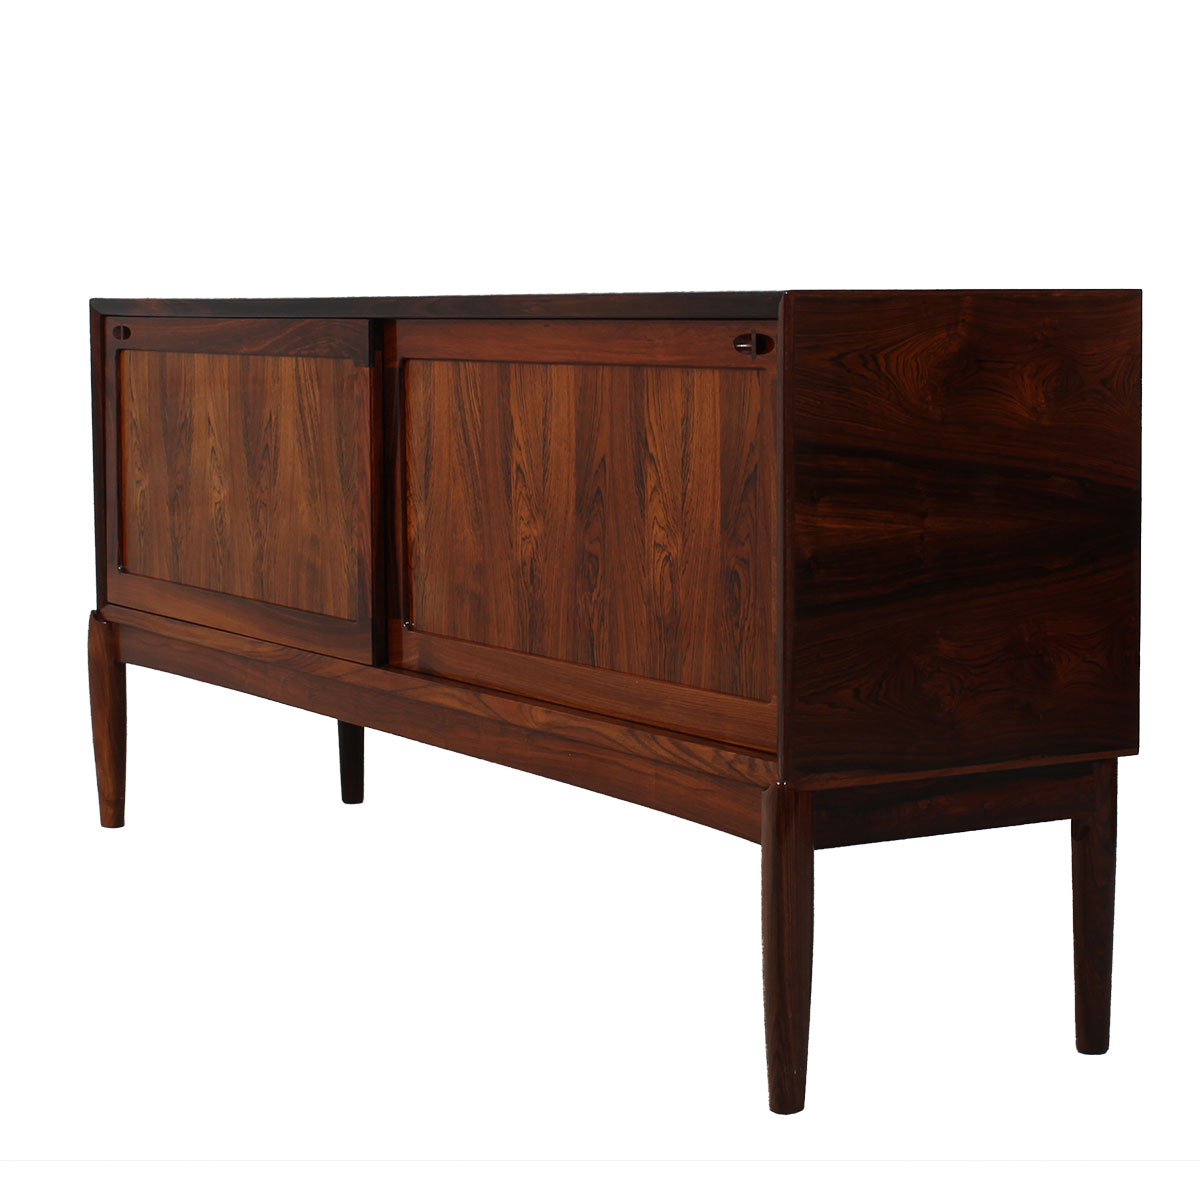 Rare Danish Modern Rosewood Sideboard by H.W. Klein — Superb!